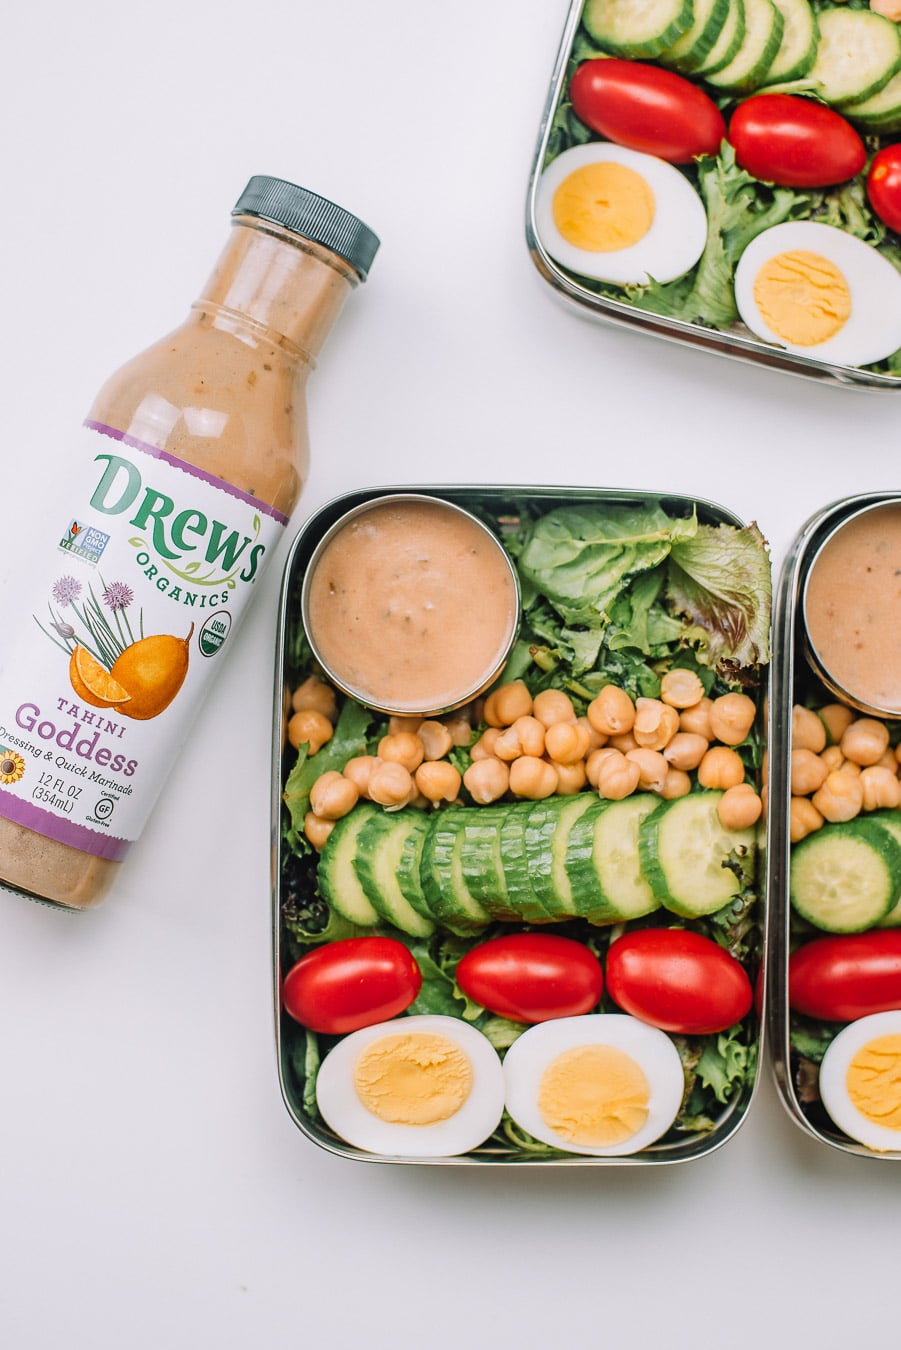 3 Bento boxes filled with mixed greens, boiled egg, grape tomatoes, mini cucumbers, chickpeas, and Drew's Organics Tahini Goddess Dressing and Marinade with bottle of dressing